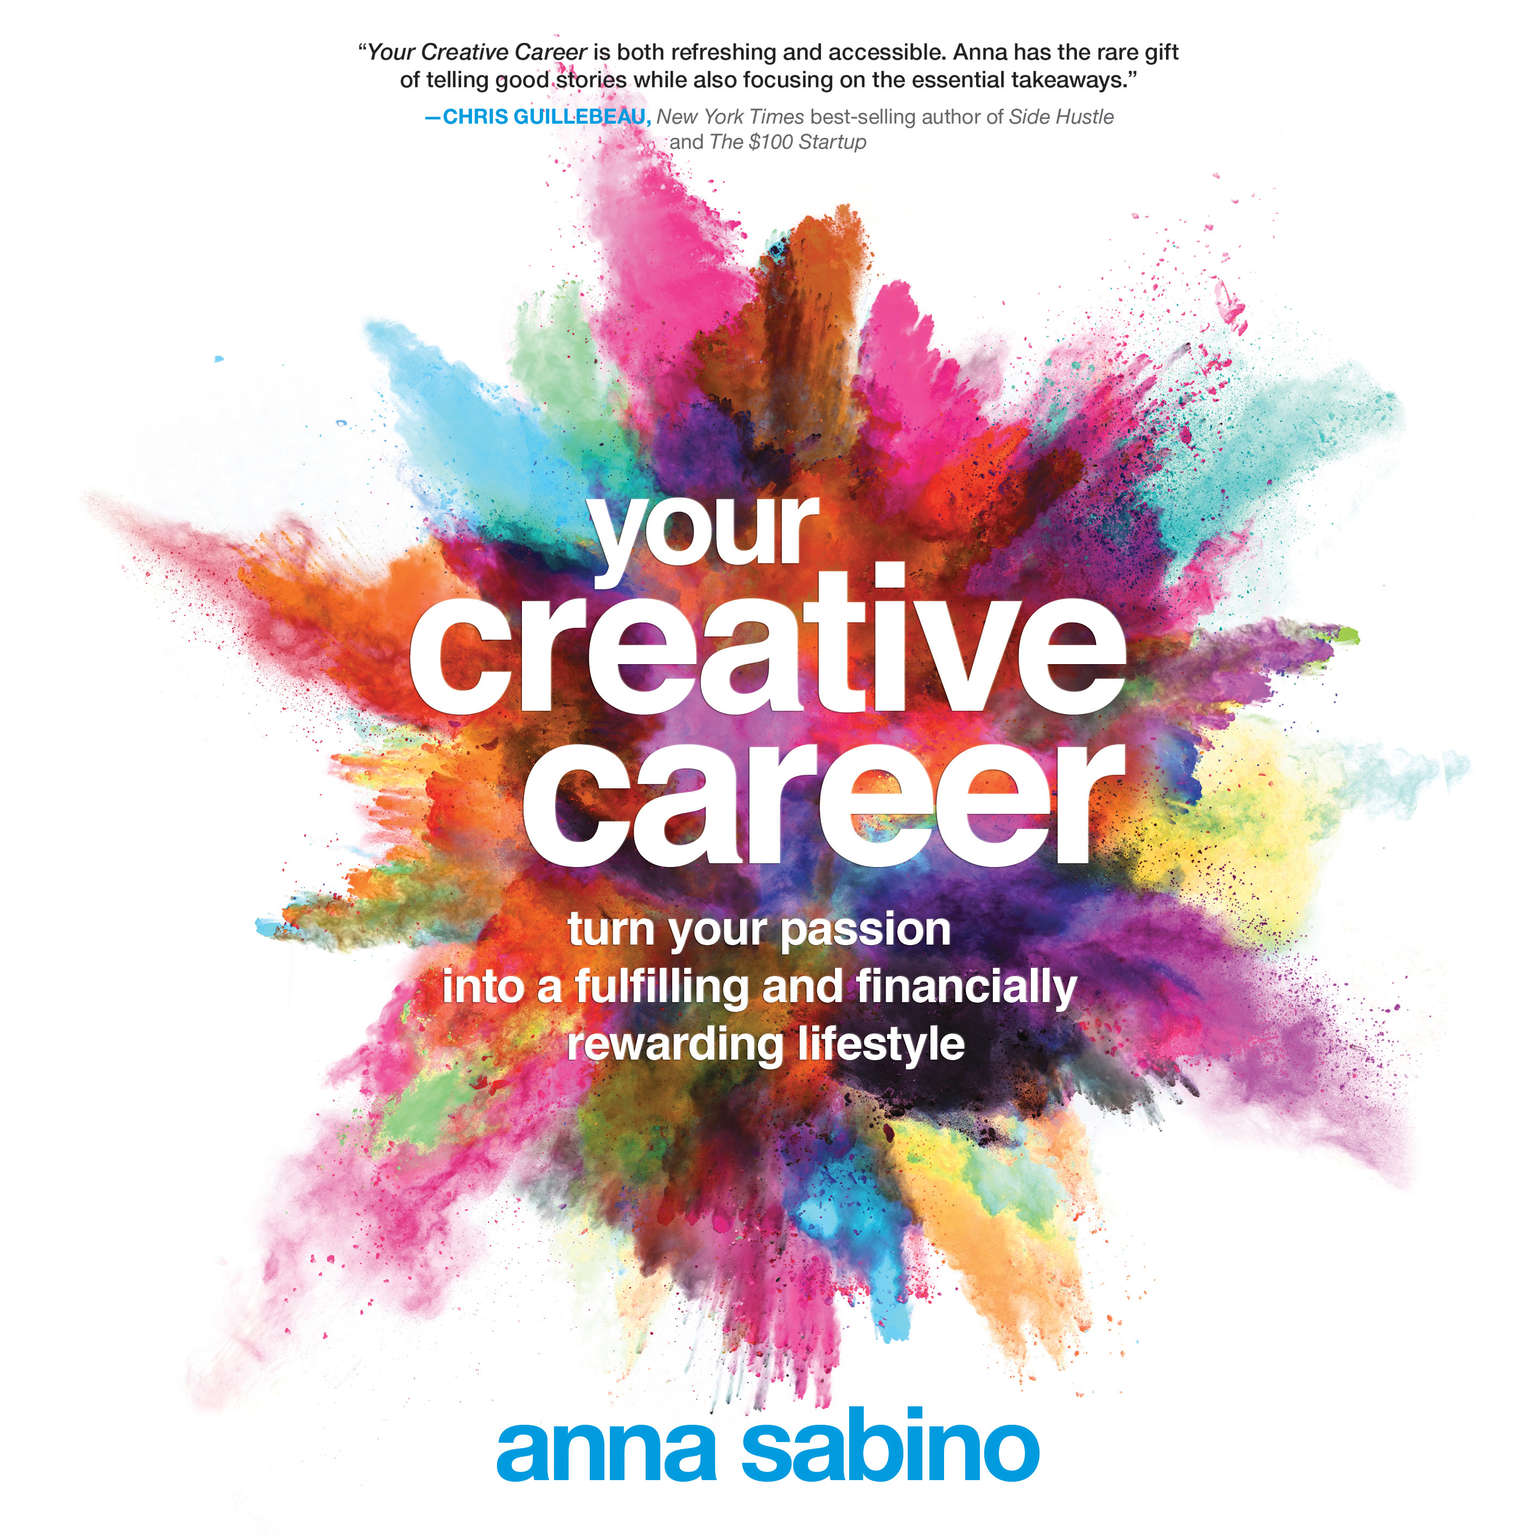 Your Creative Career: Turn Your Passion into a Fulfilling and Financially Rewarding Lifestyle Audiobook, by Anna Sabino